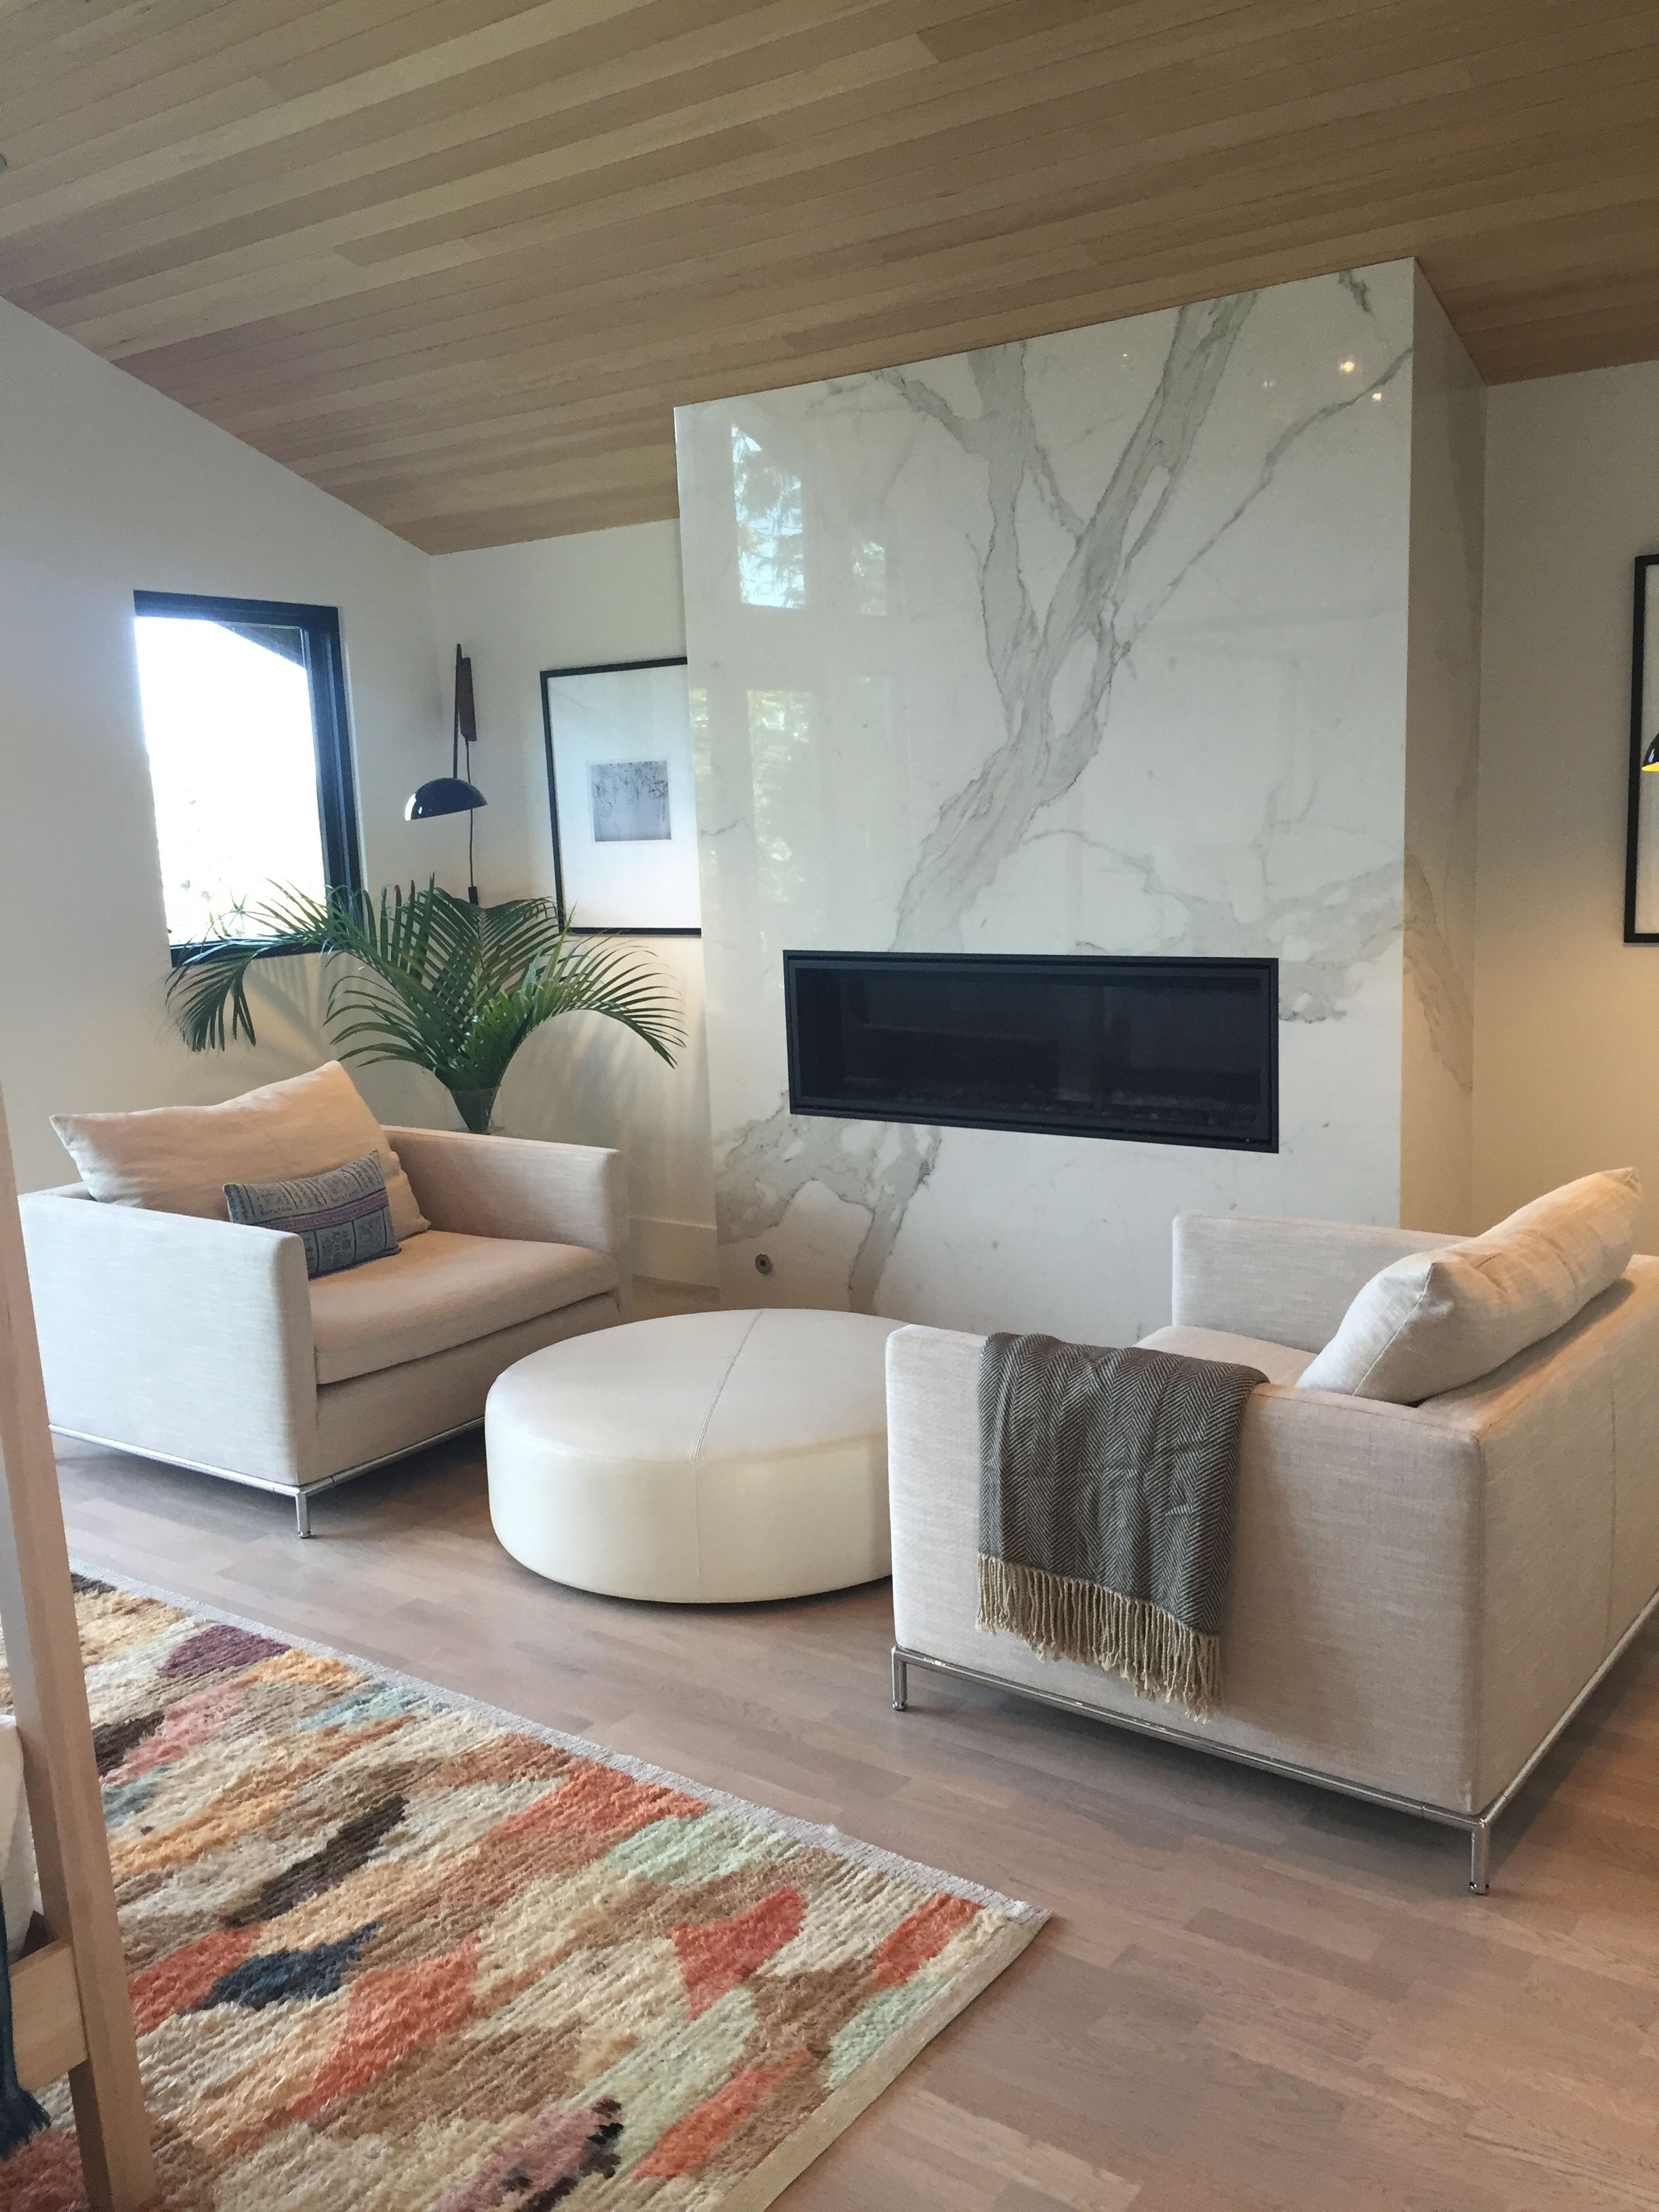 This Home Was Featured In An Article 425 Magazine I Wrote For The 2016 Idea House I Had The Awesome Opportunit Home Decor Home Fireplace Living Room Designs